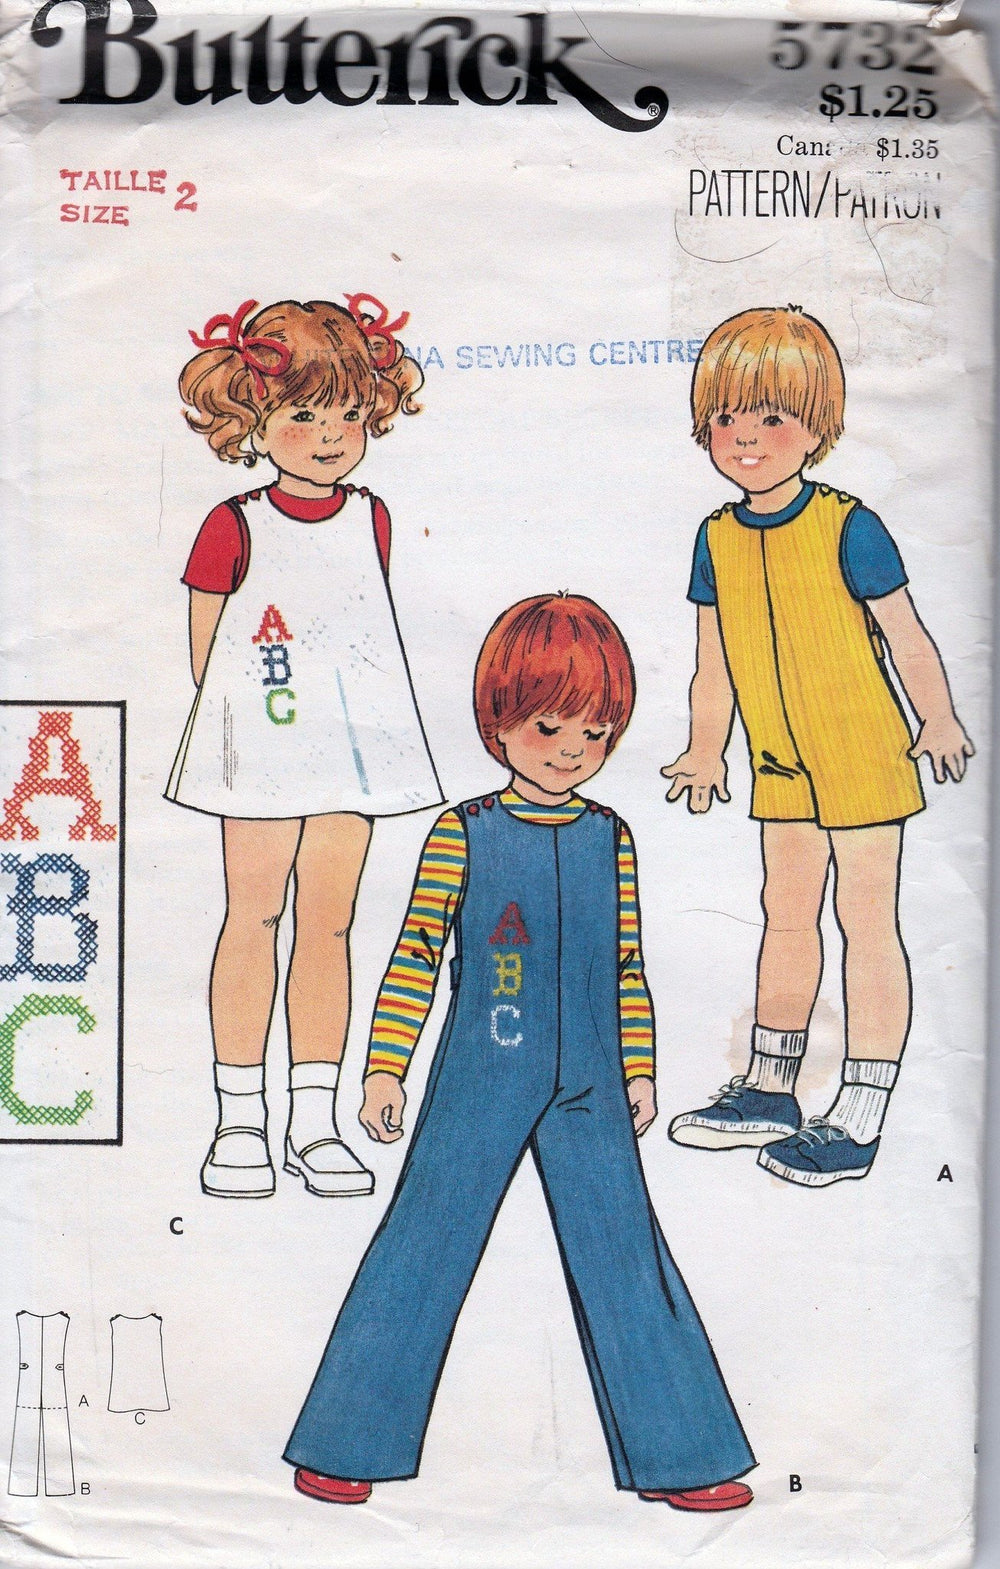 Butterick 5732 Toddler Jumpsuit Jumper Dress Vintage Pattern 1970's - VintageStitching - Vintage Sewing Patterns